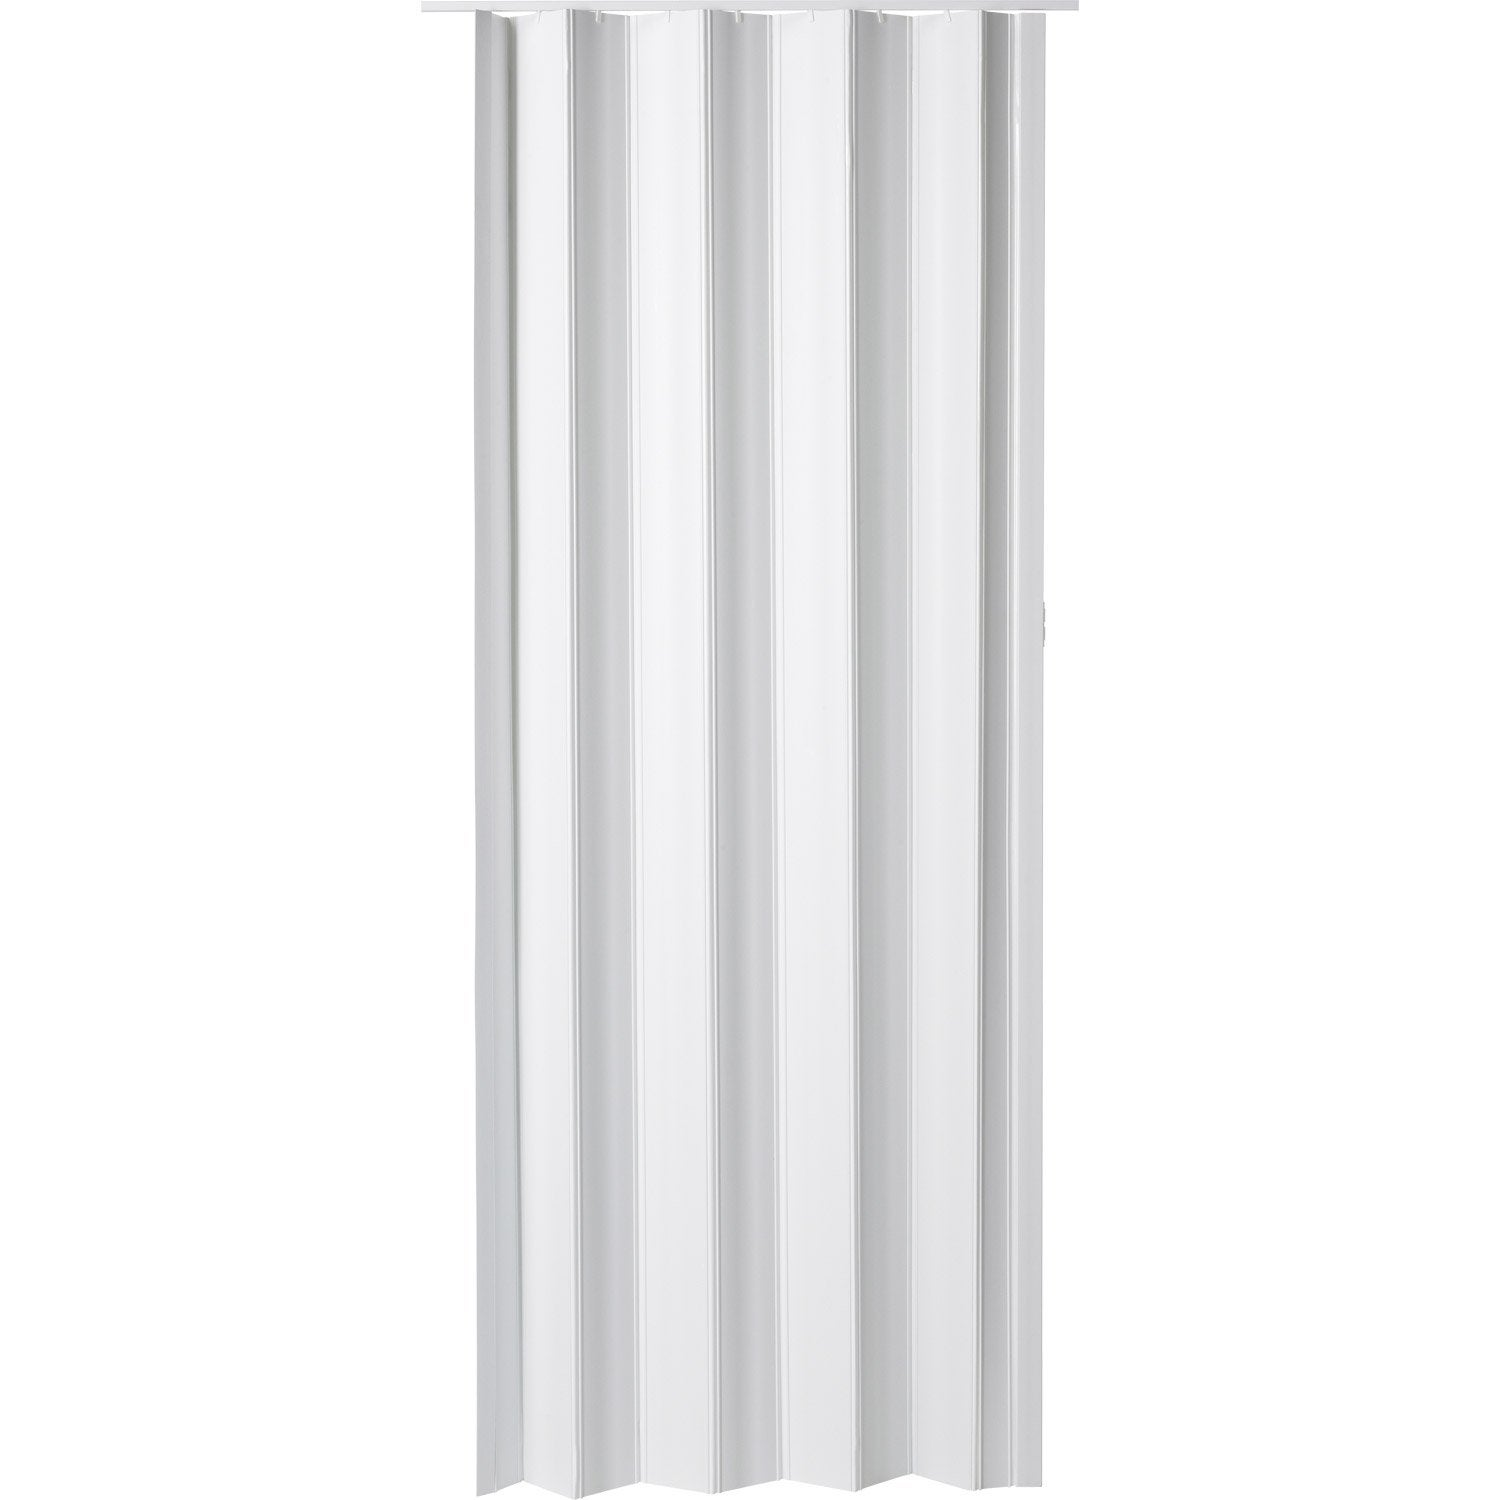 Porte extensible eco blanc 203 x 85 cm pais d 39 une for Porte extensible leroy merlin